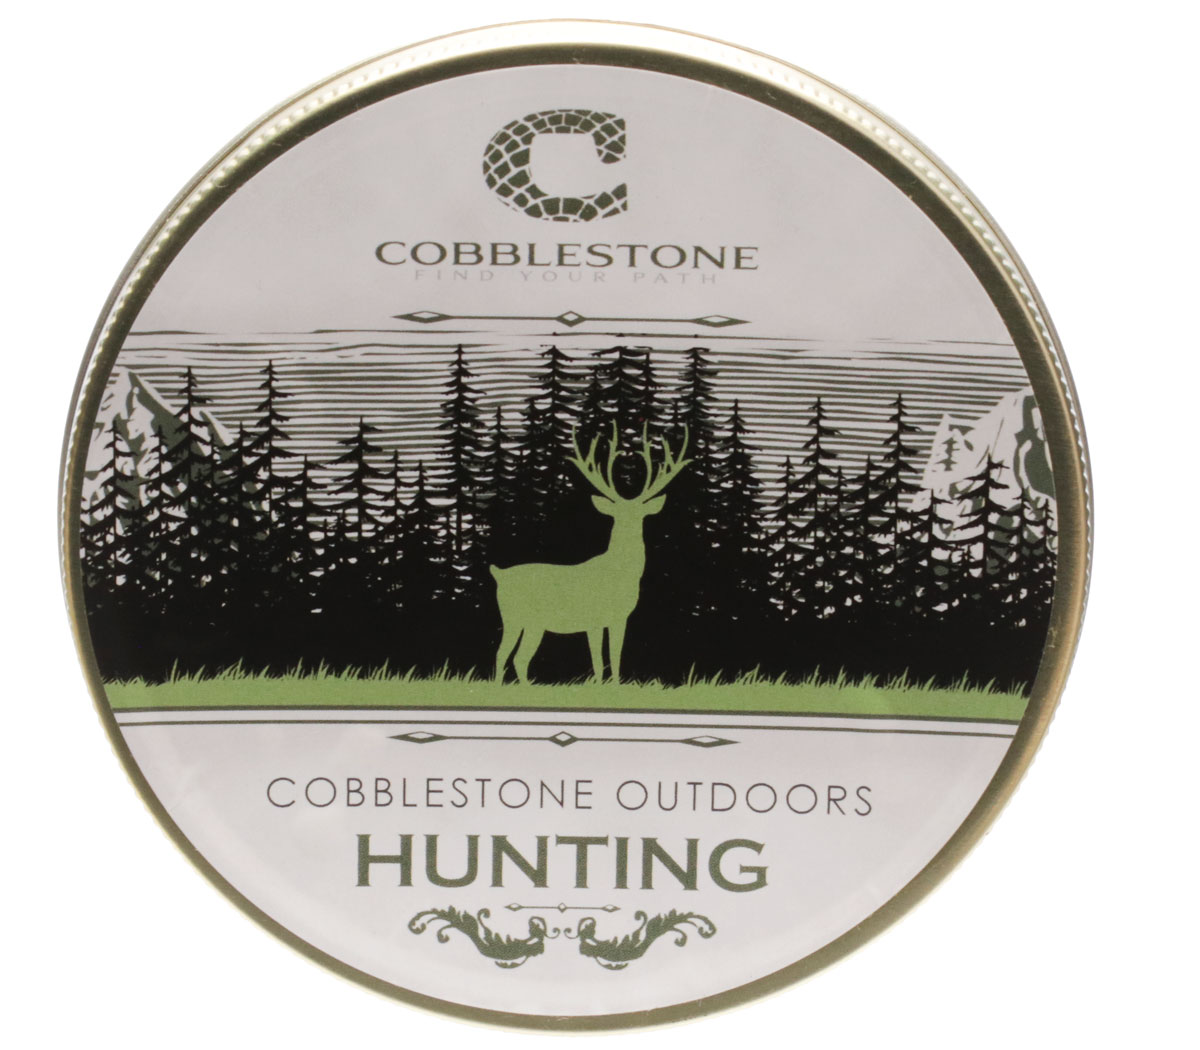 Cobblestone Outdoors Hunting 1.75oz